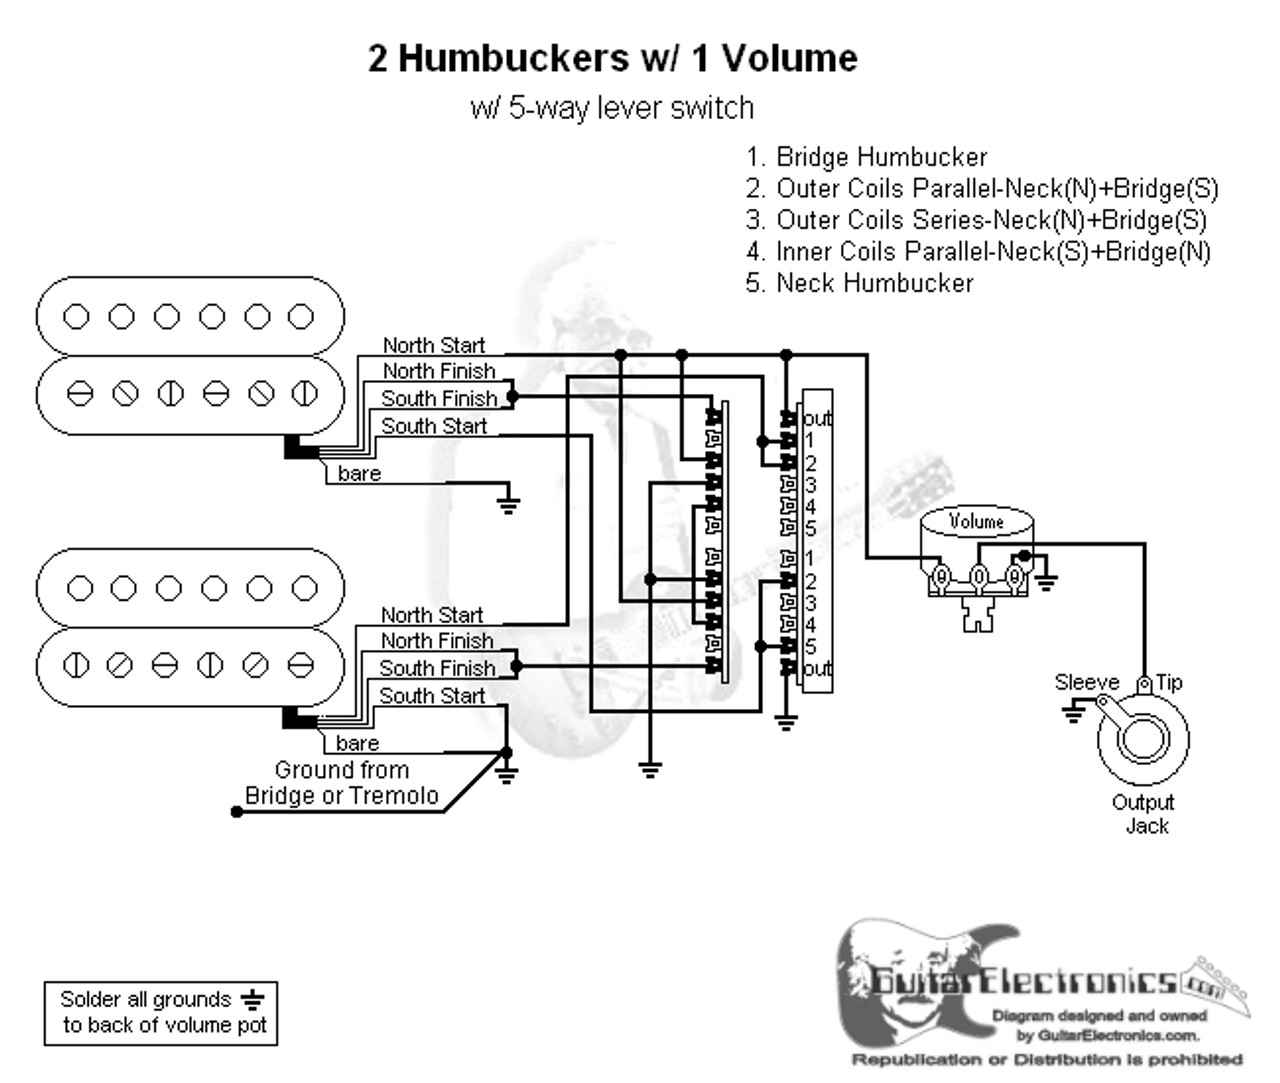 3 Way 4 Pole Guitar Wiring Diagram - Wiring Diagram G8  Way Switch Wiring Diagram Wires on 4-way circuit diagram, 4 wire pull, 3-way switch diagram, 4 wire fan diagram, 2-way switch diagram, 4 wire motor diagram, 4-way switch diagram, 3 speed fan switch diagram, switch connection diagram, 55 chevy headlight switch diagram,